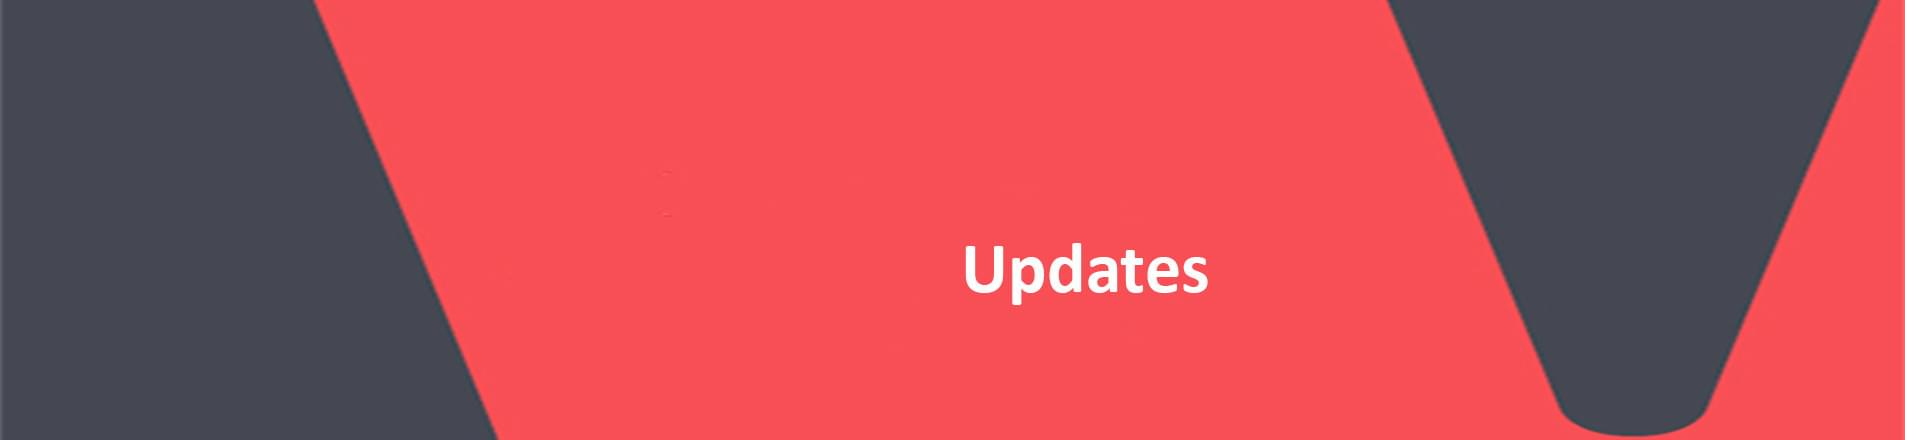 The title 'Updates' on the red VERCIDA background.